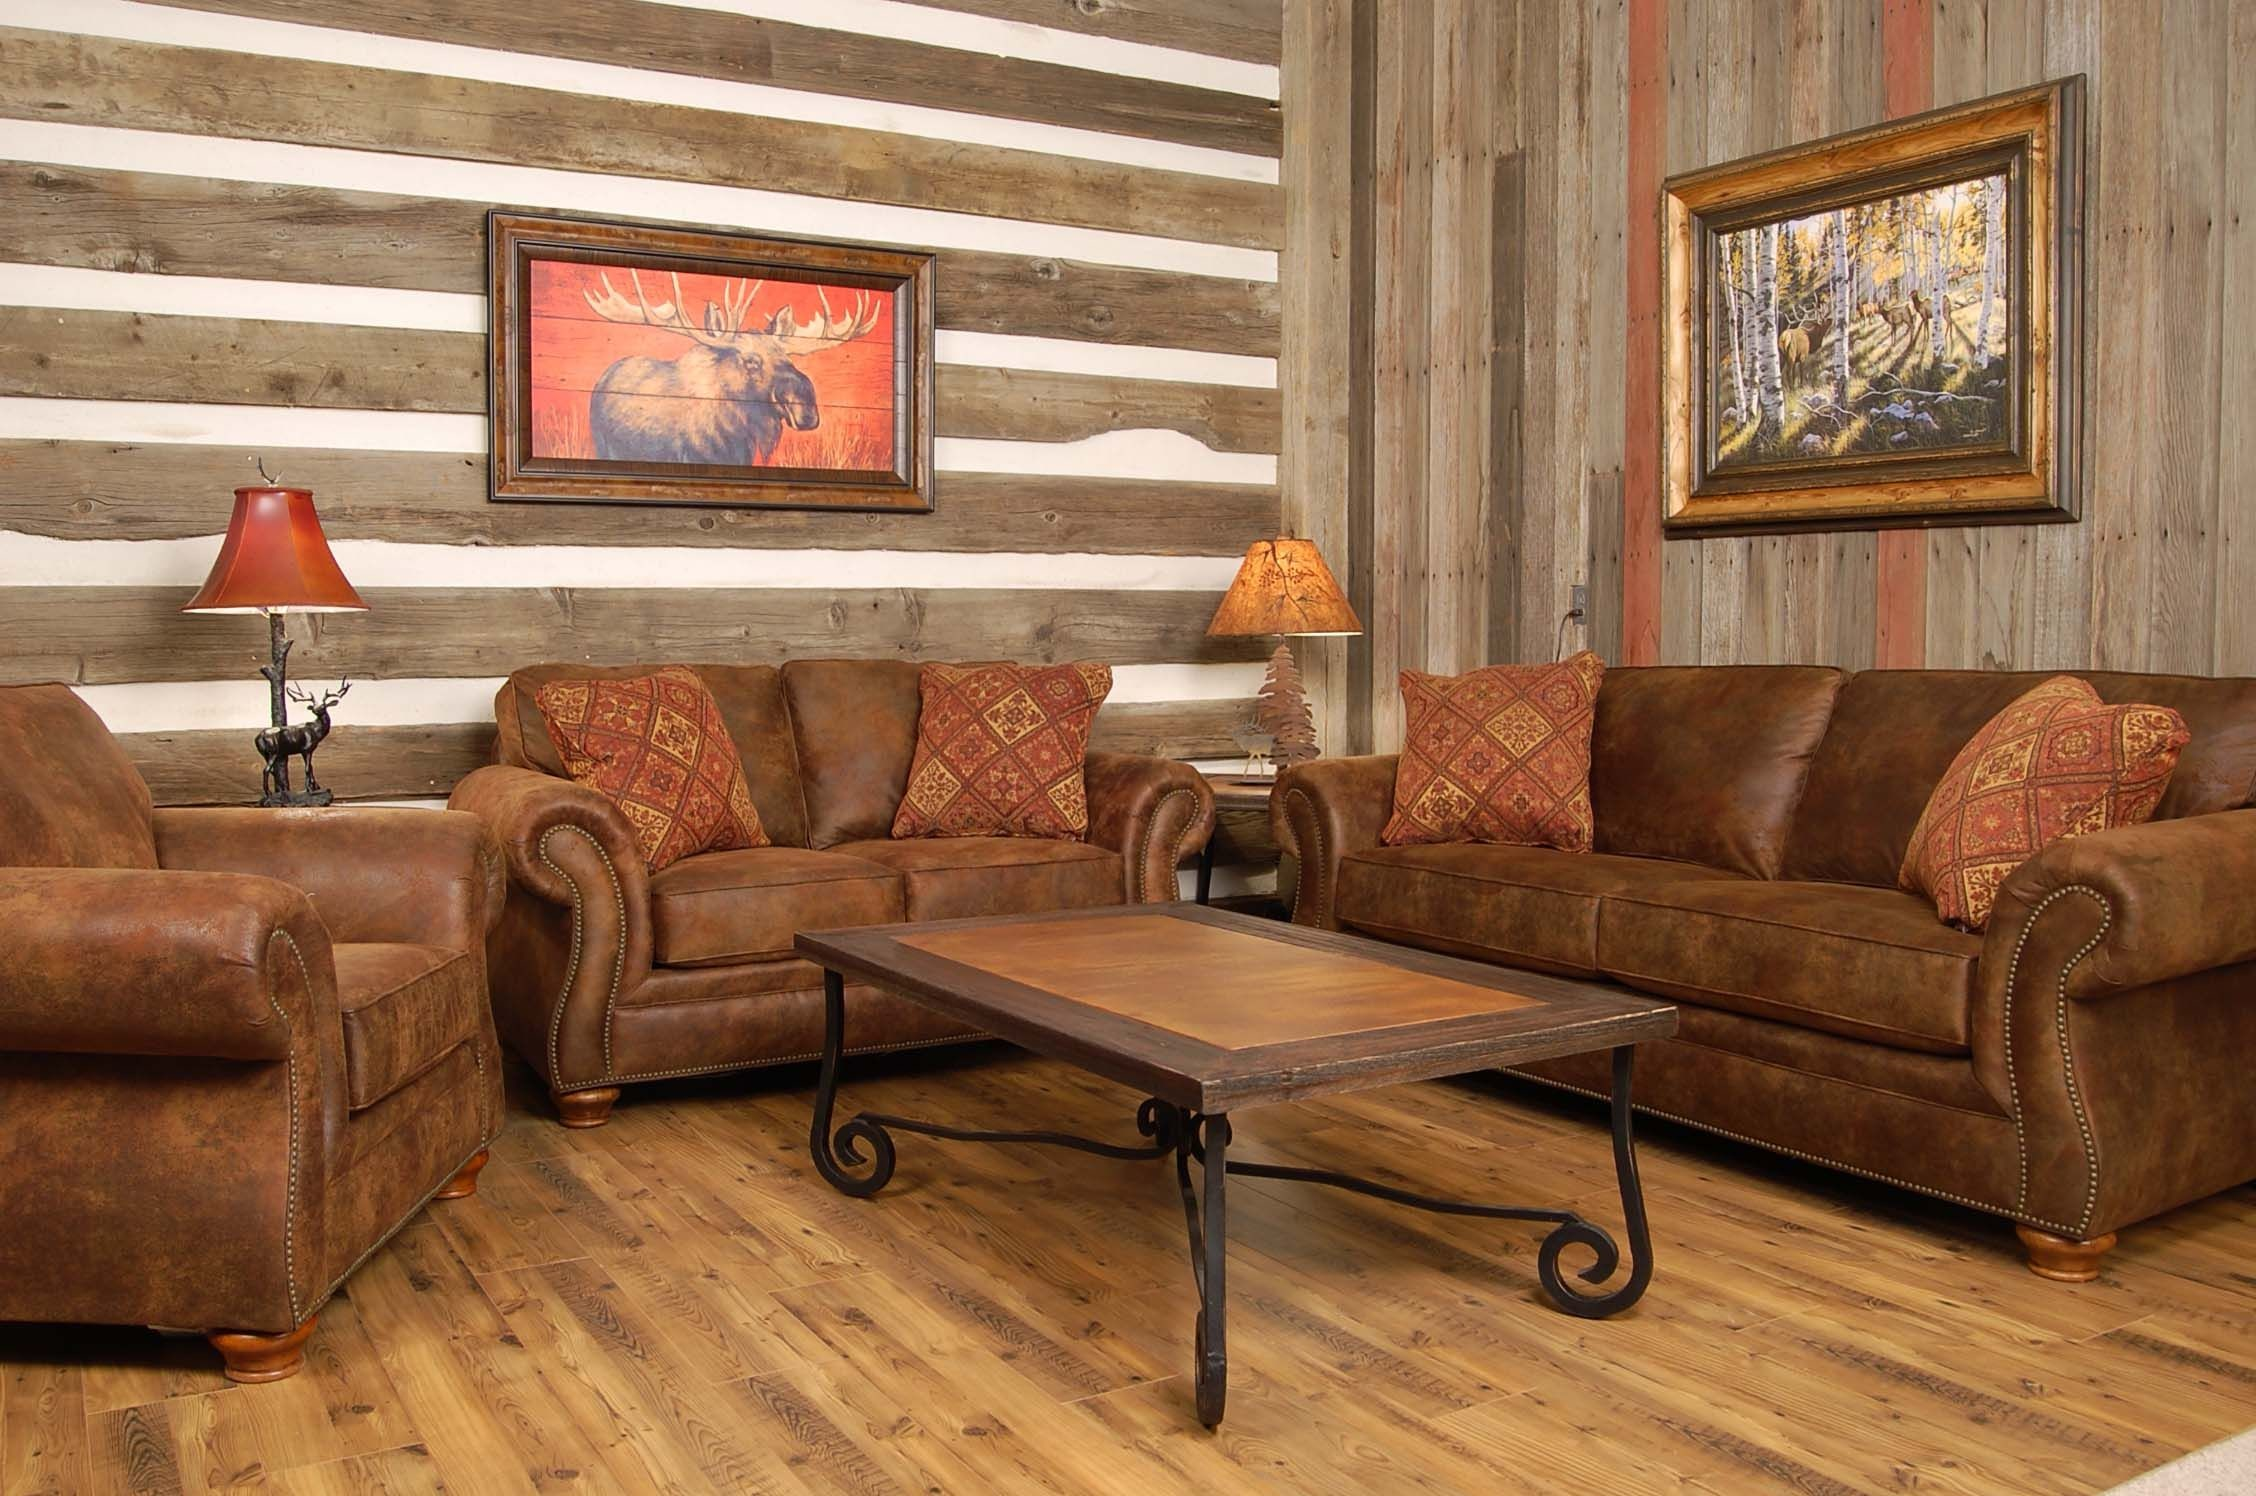 Cool Leather Sofa Set Wallpapers Odd. country home decor ideas. home decor  help. …